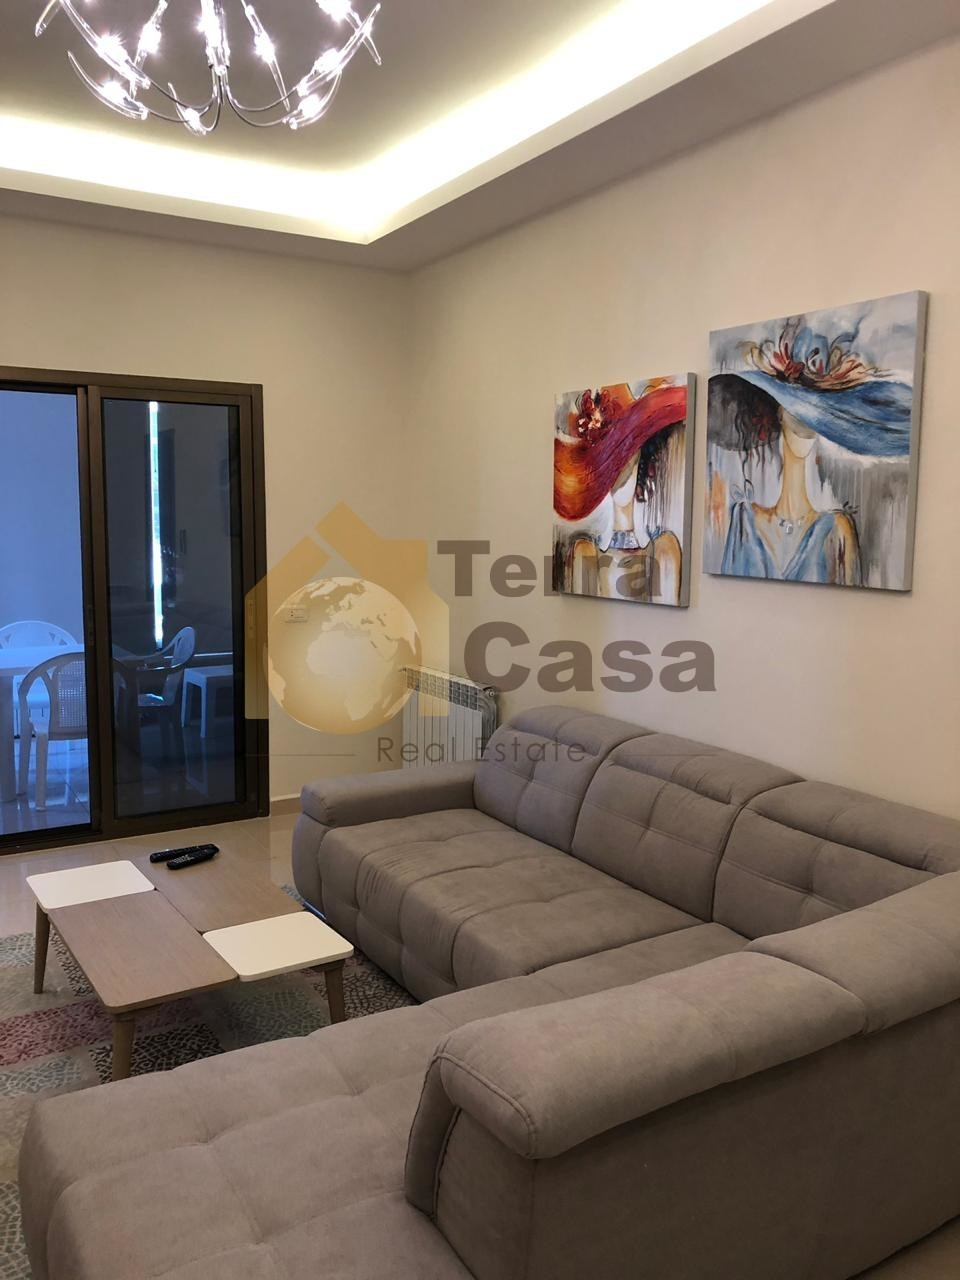 Apartment for rent in zahle fully furnished short term lease.